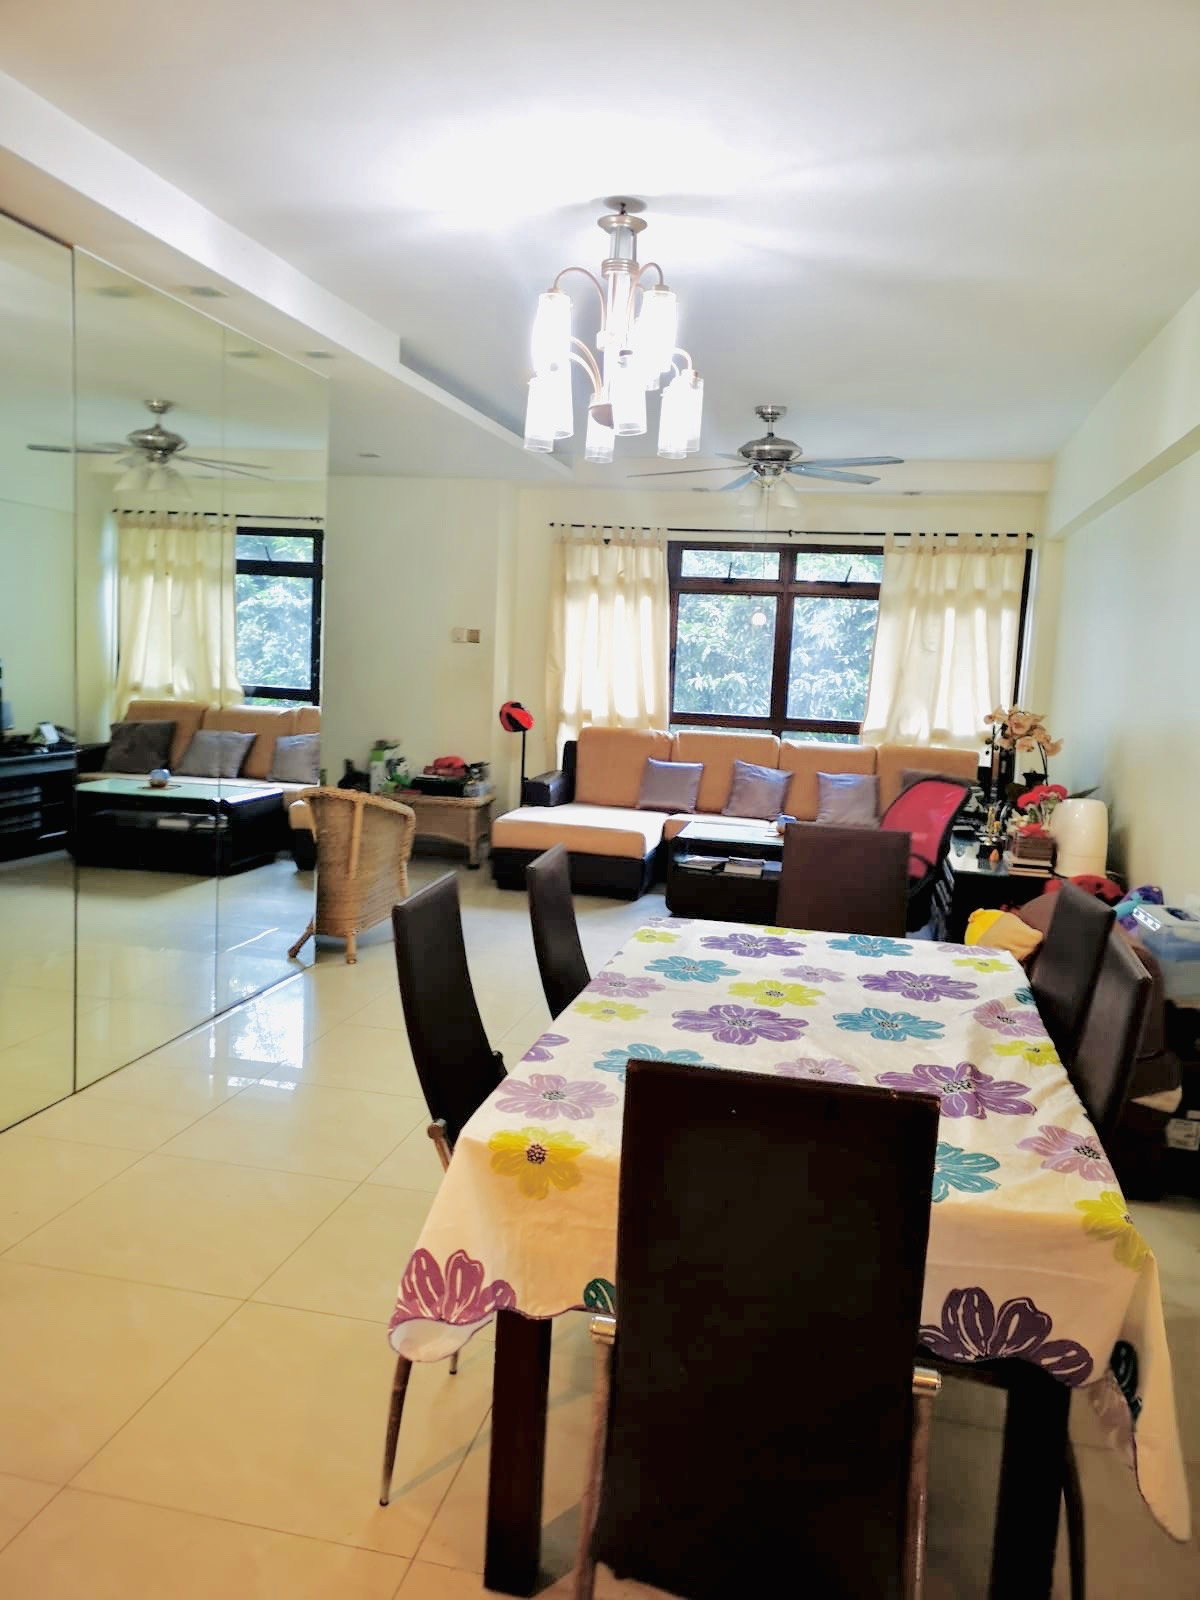 HDB for RENT - 5 ROOM FULLY FURNISHED NEAR AMK MRT